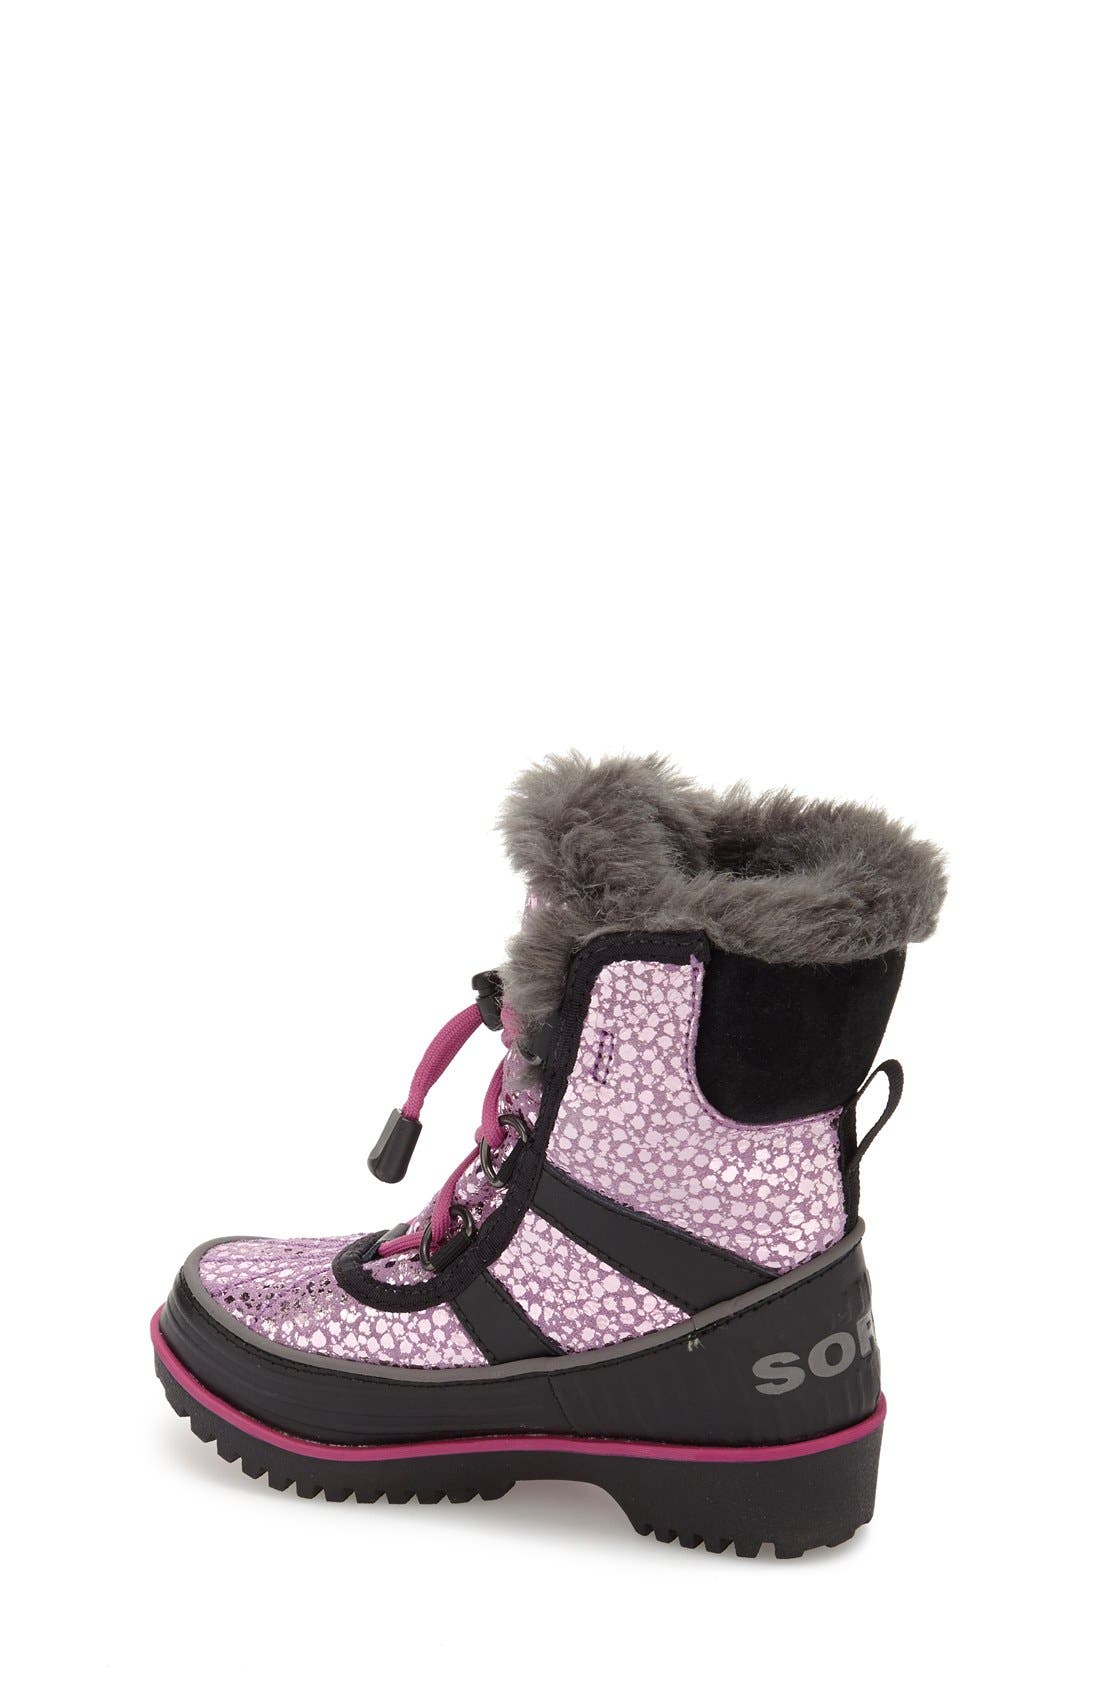 Alternate Image 2  - SOREL 'Tivoli II' Waterproof Snow Boot (Toddler & Little Kid)